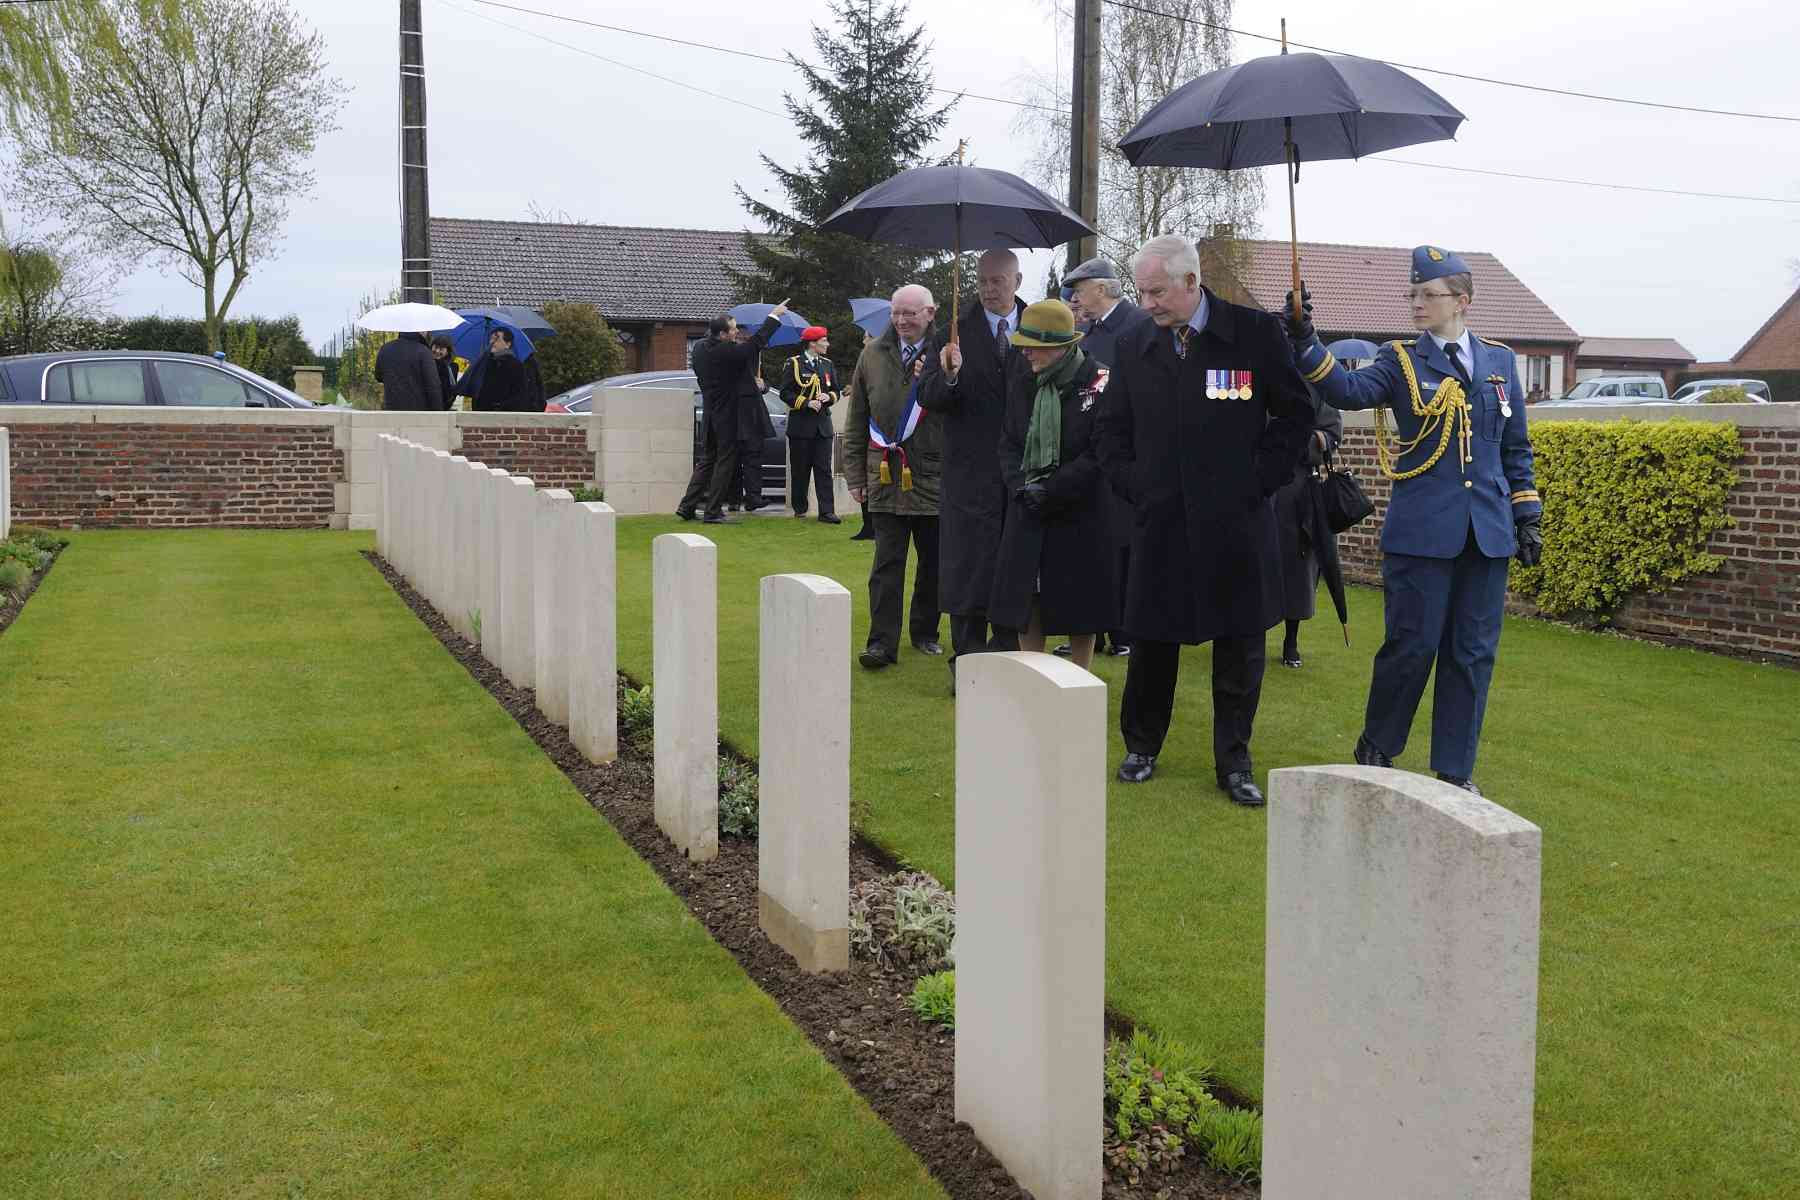 Their Excellencies visited the Bois-Carre British Cemetery, in Thélus.